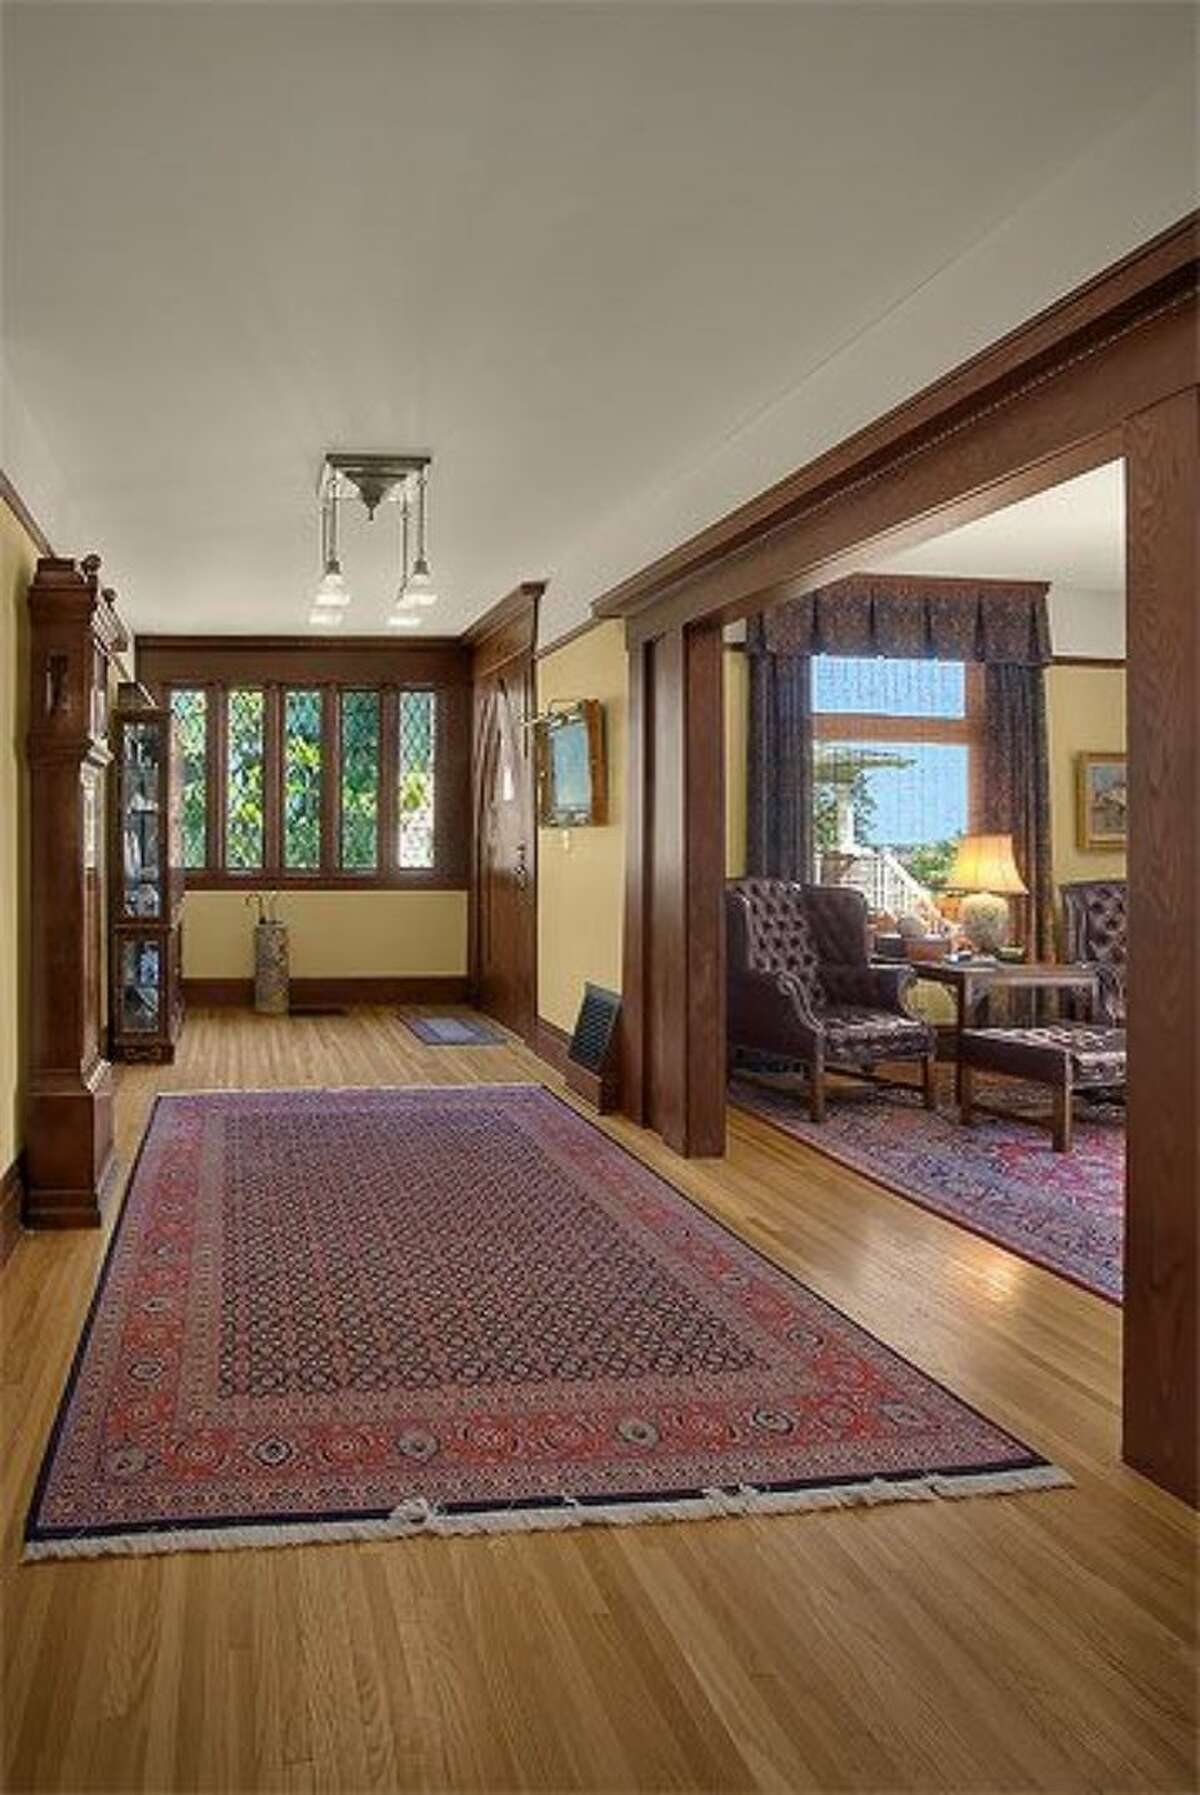 Foyer of 143 Madrona Place East. The 5,100-square-foot house, built in 1905, has five bedrooms and 4.25 bathrooms -- including a separate lower-level apartment -- exposed-wood doors, paneling, moldings and beams, leaded glass, a solarium, a balcony off the master bedroom and a patio on a 9,695-square-foot lot. It's listed for $2.425 million.